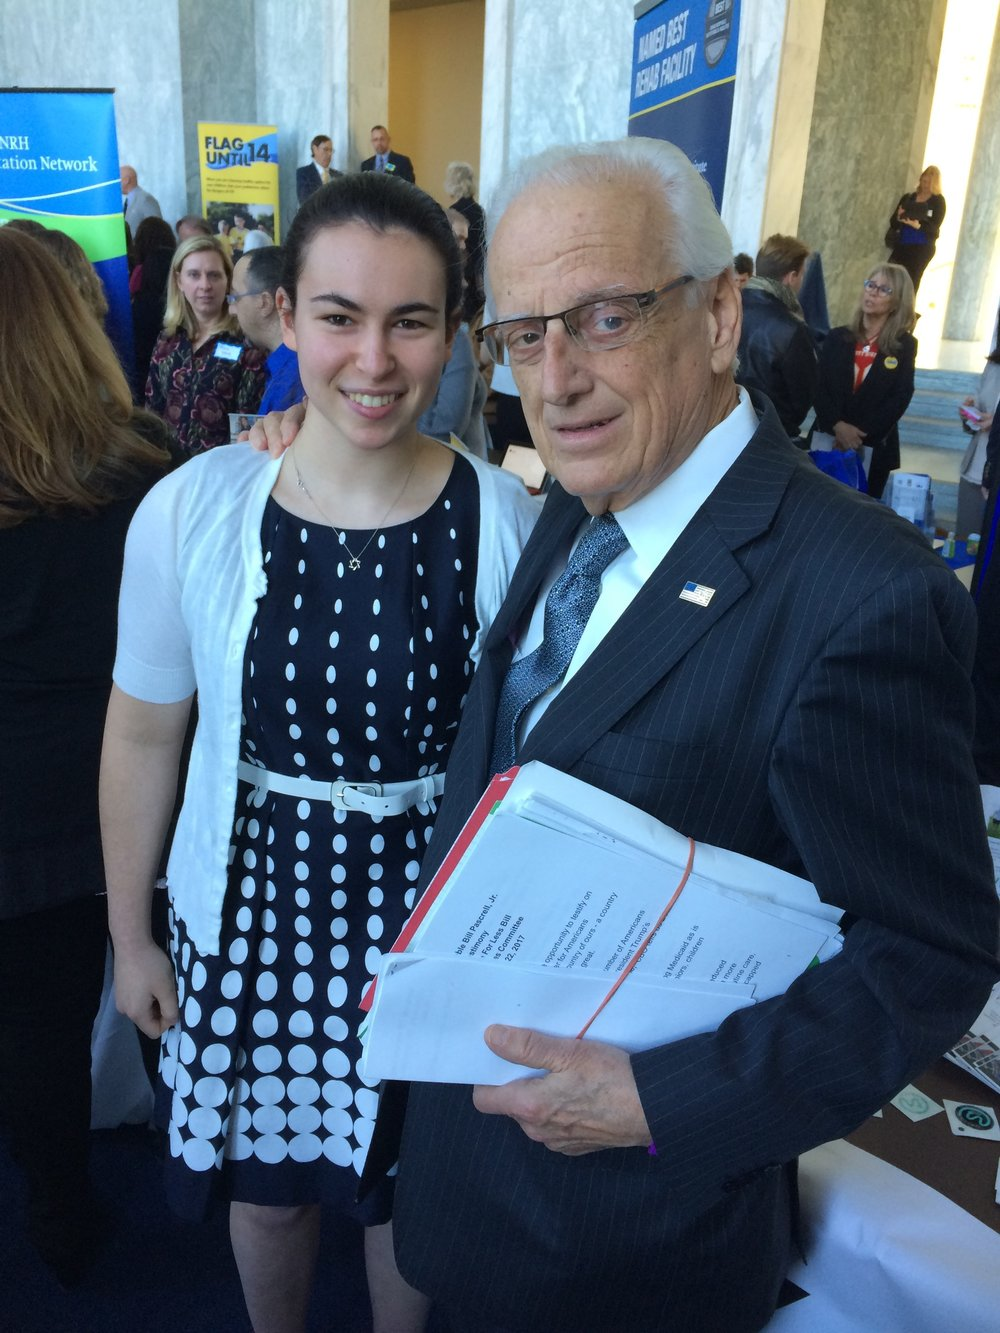 Above, Renberg with Congressman Bill Pascrell (NJ-D) who heads the Congressional Brain Injury Task Force and hosted the day's events.